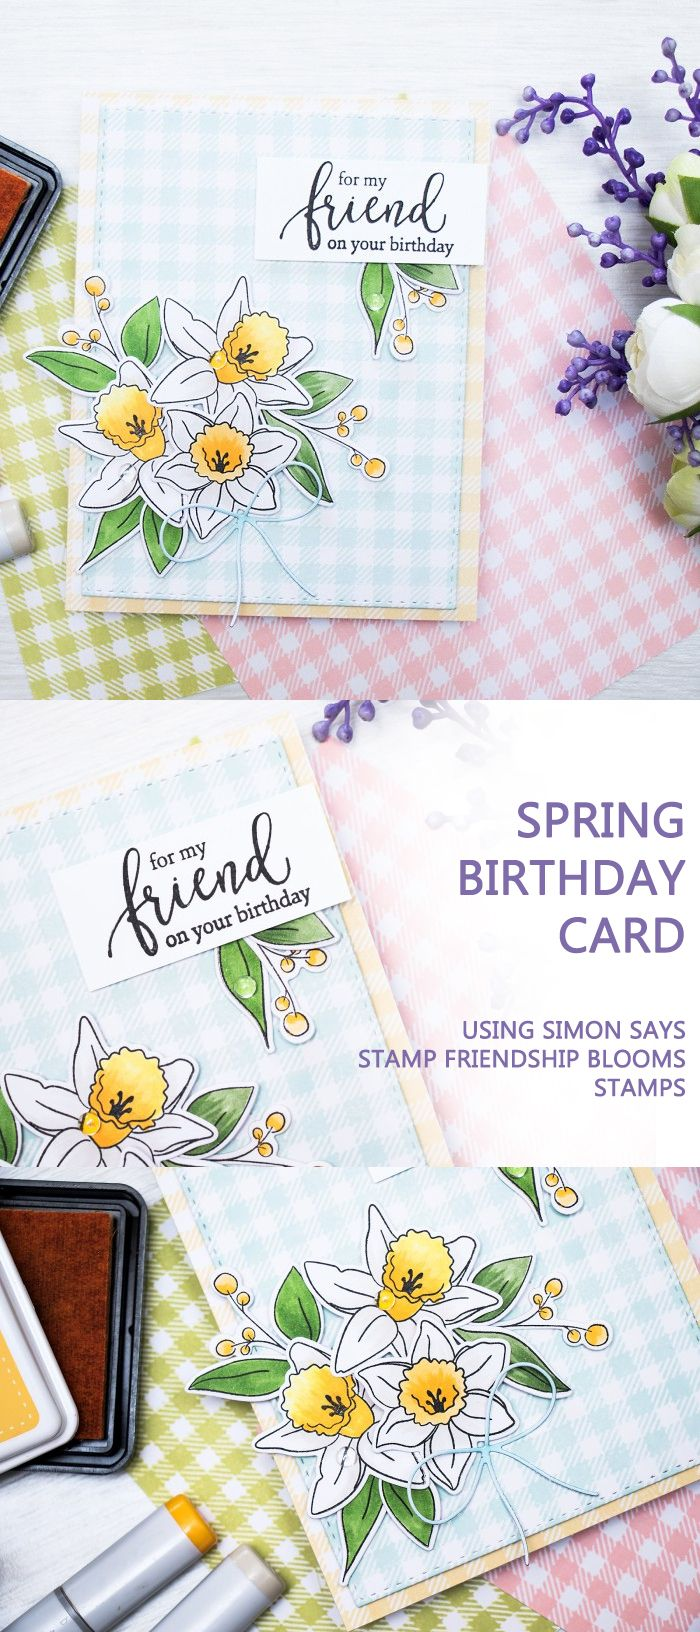 Create a fresh Spring Birthday card using Simon Says Clear Stamps Friendship Blooms. To learn more, please visit  http://www.yanasmakula.com/?p=52663?1